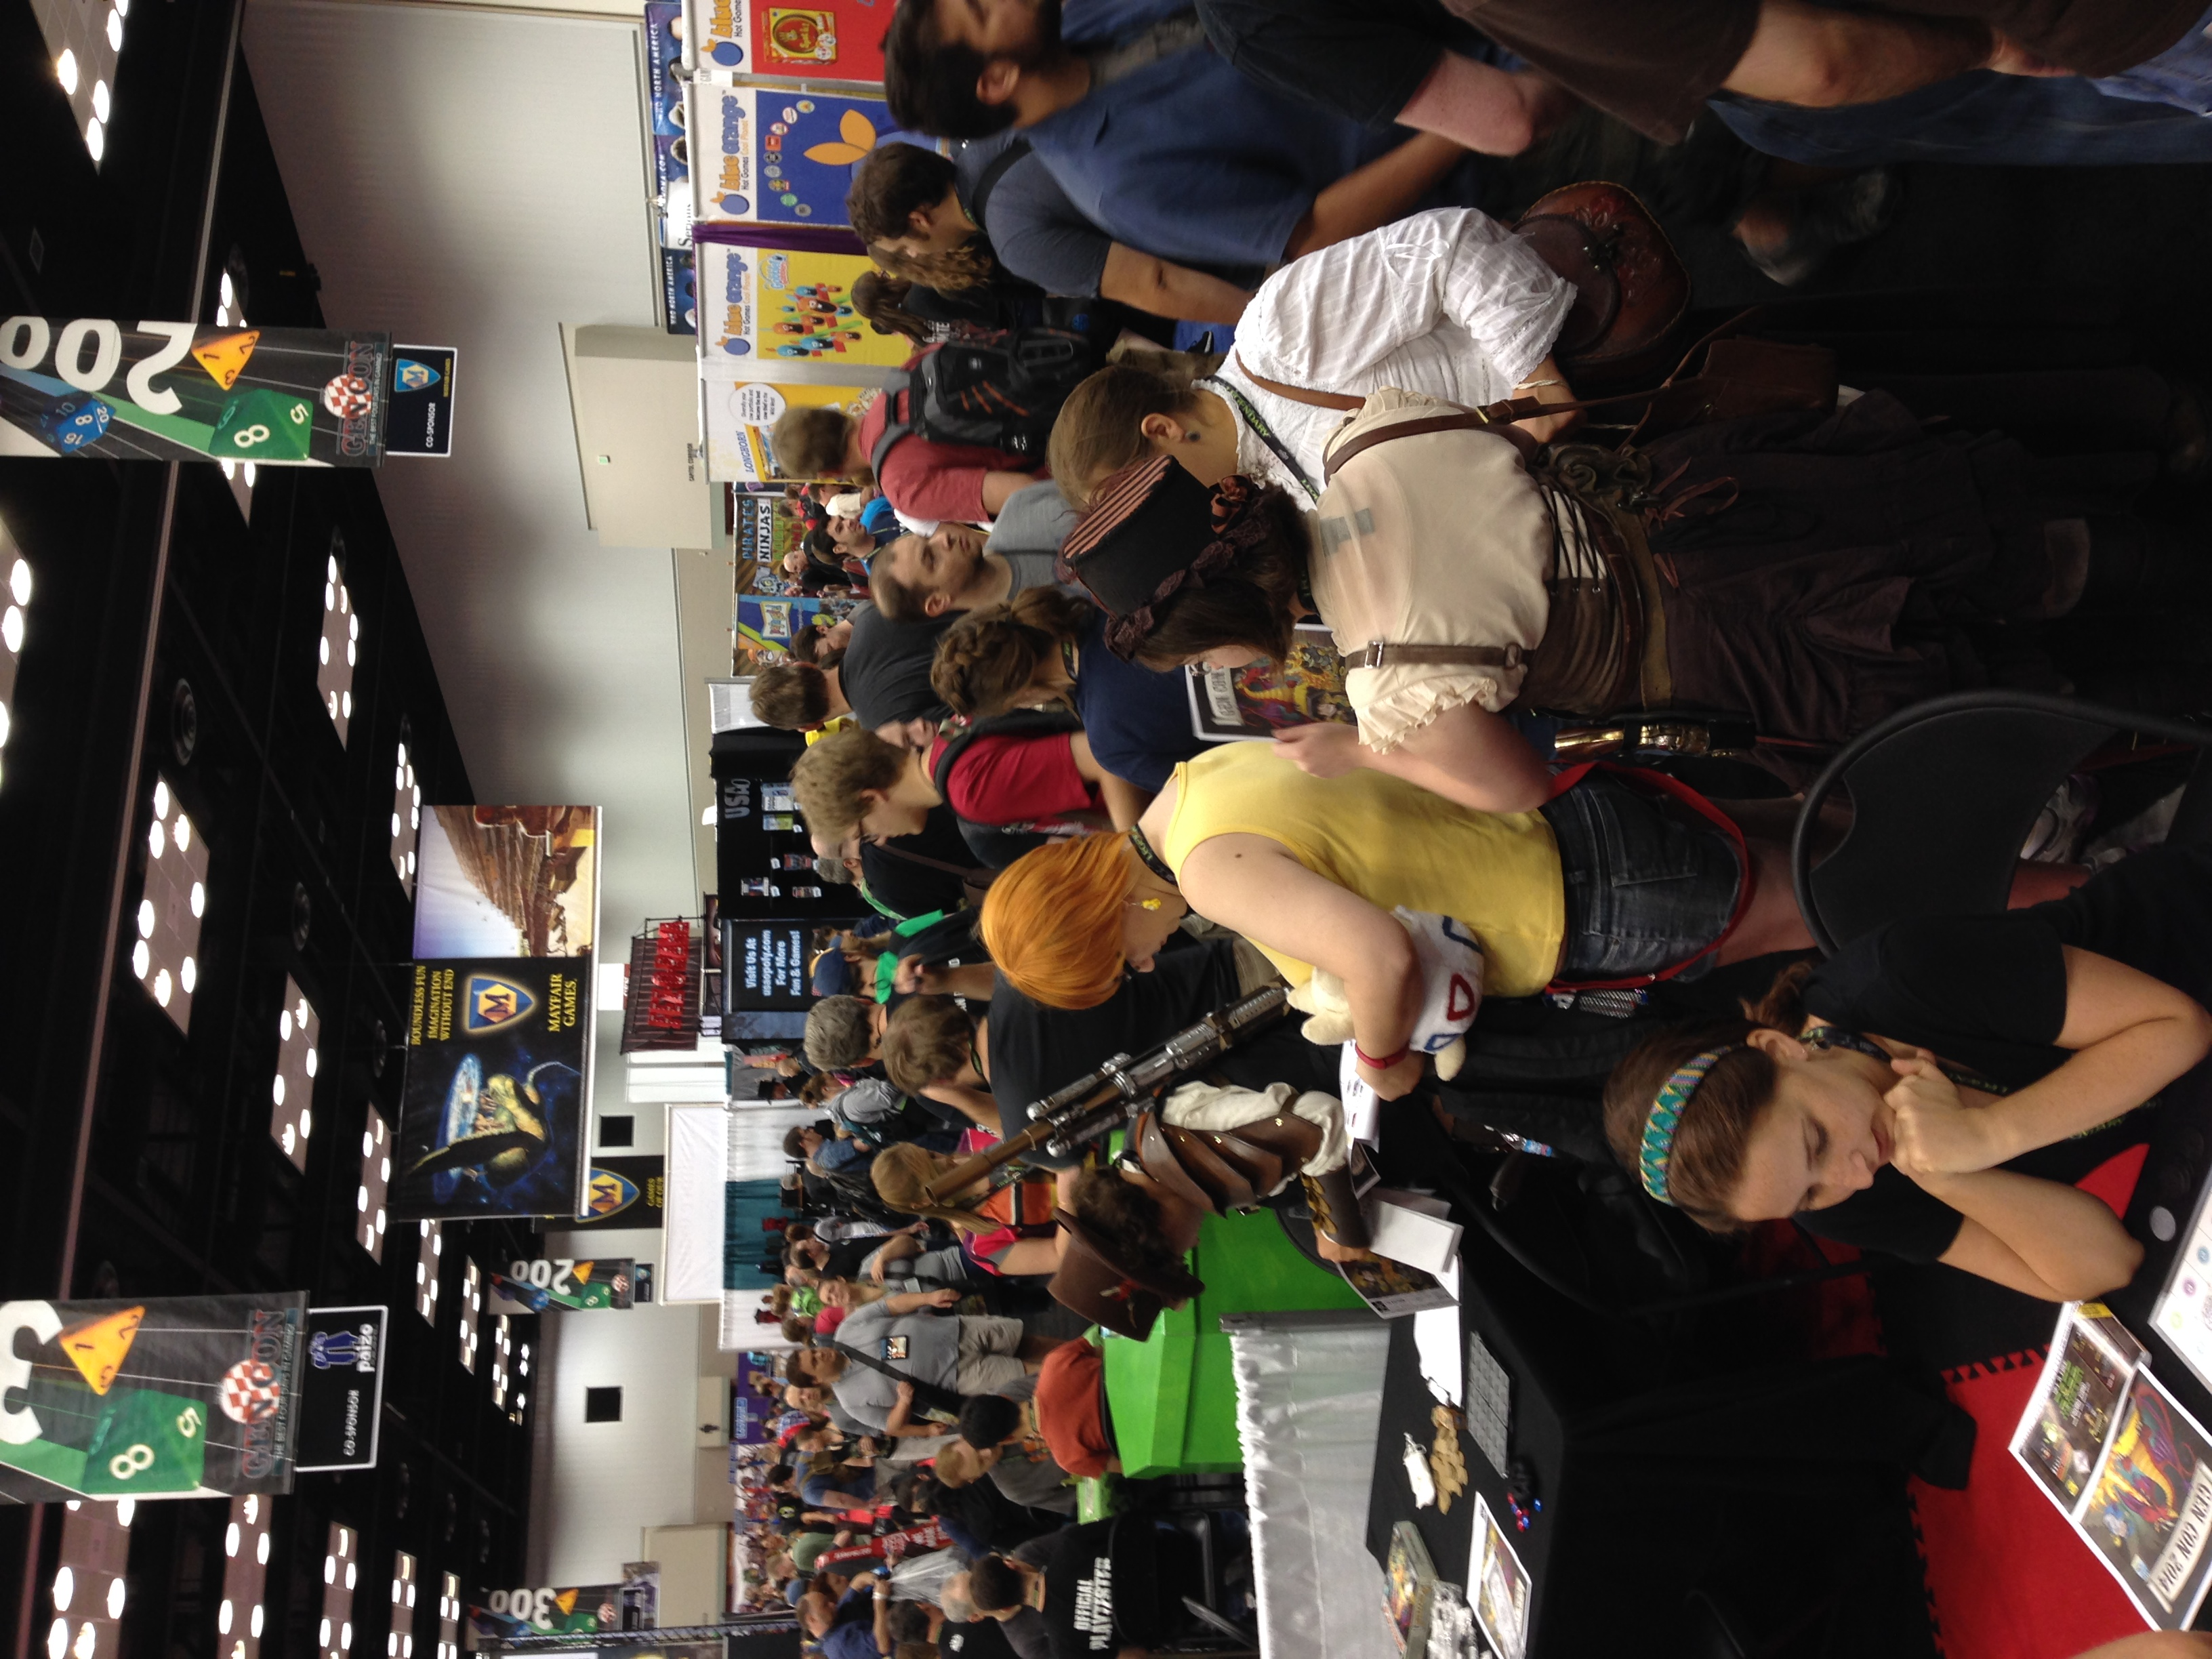 Small corner of the universe called Gen Con.